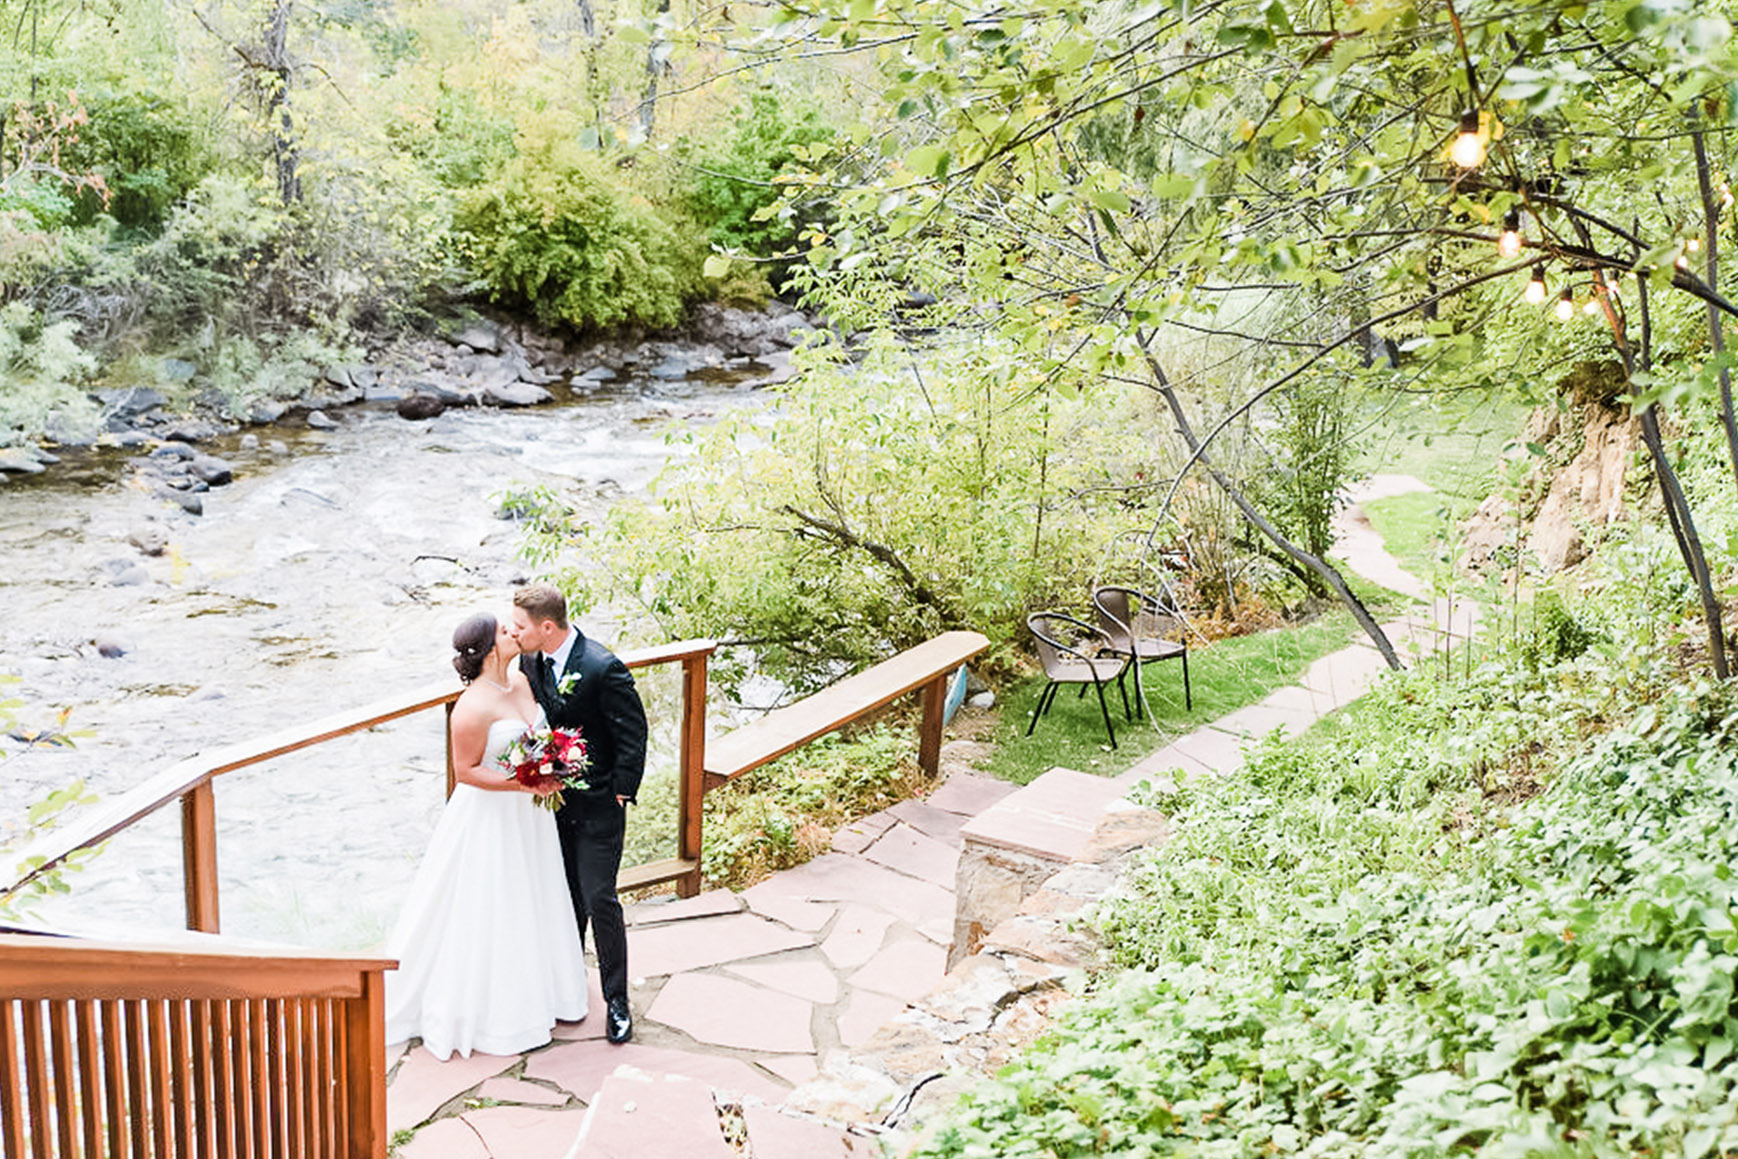 Couple Kissing by Creek - Boulder Creek - Boulder, Colorado - Boulder County - Wedgewood Weddings